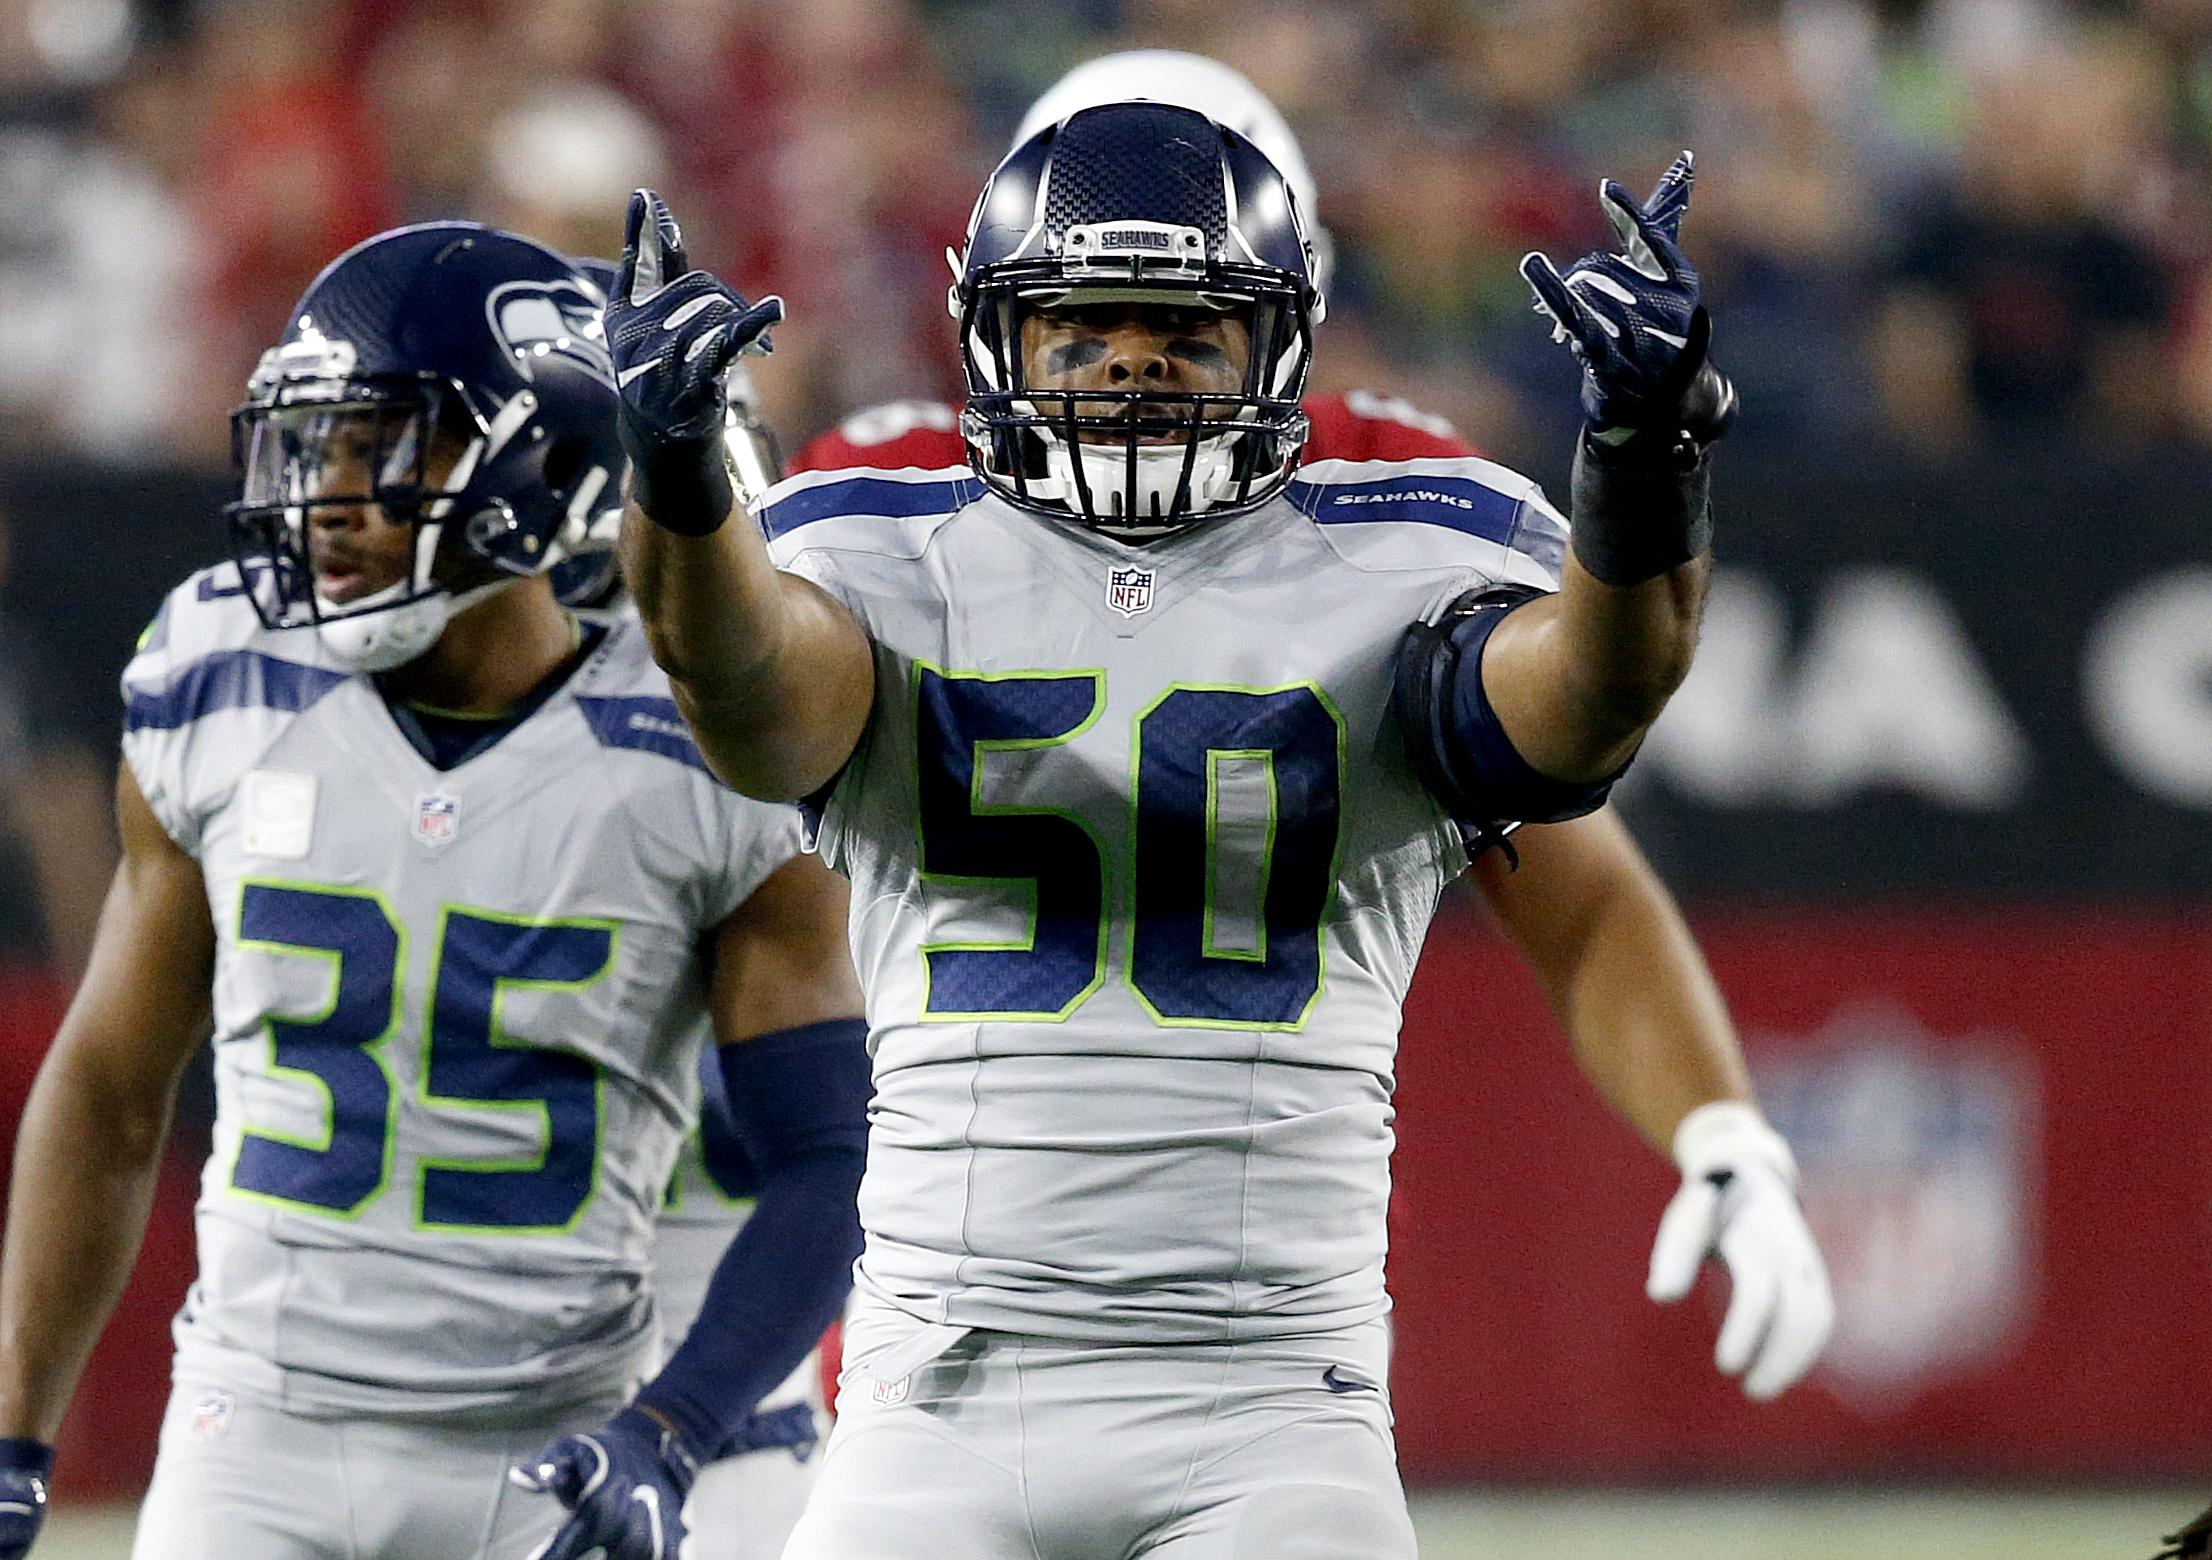 K.J. Wright thrilled to rejoin Seahawks after setback in rehab  971da1257